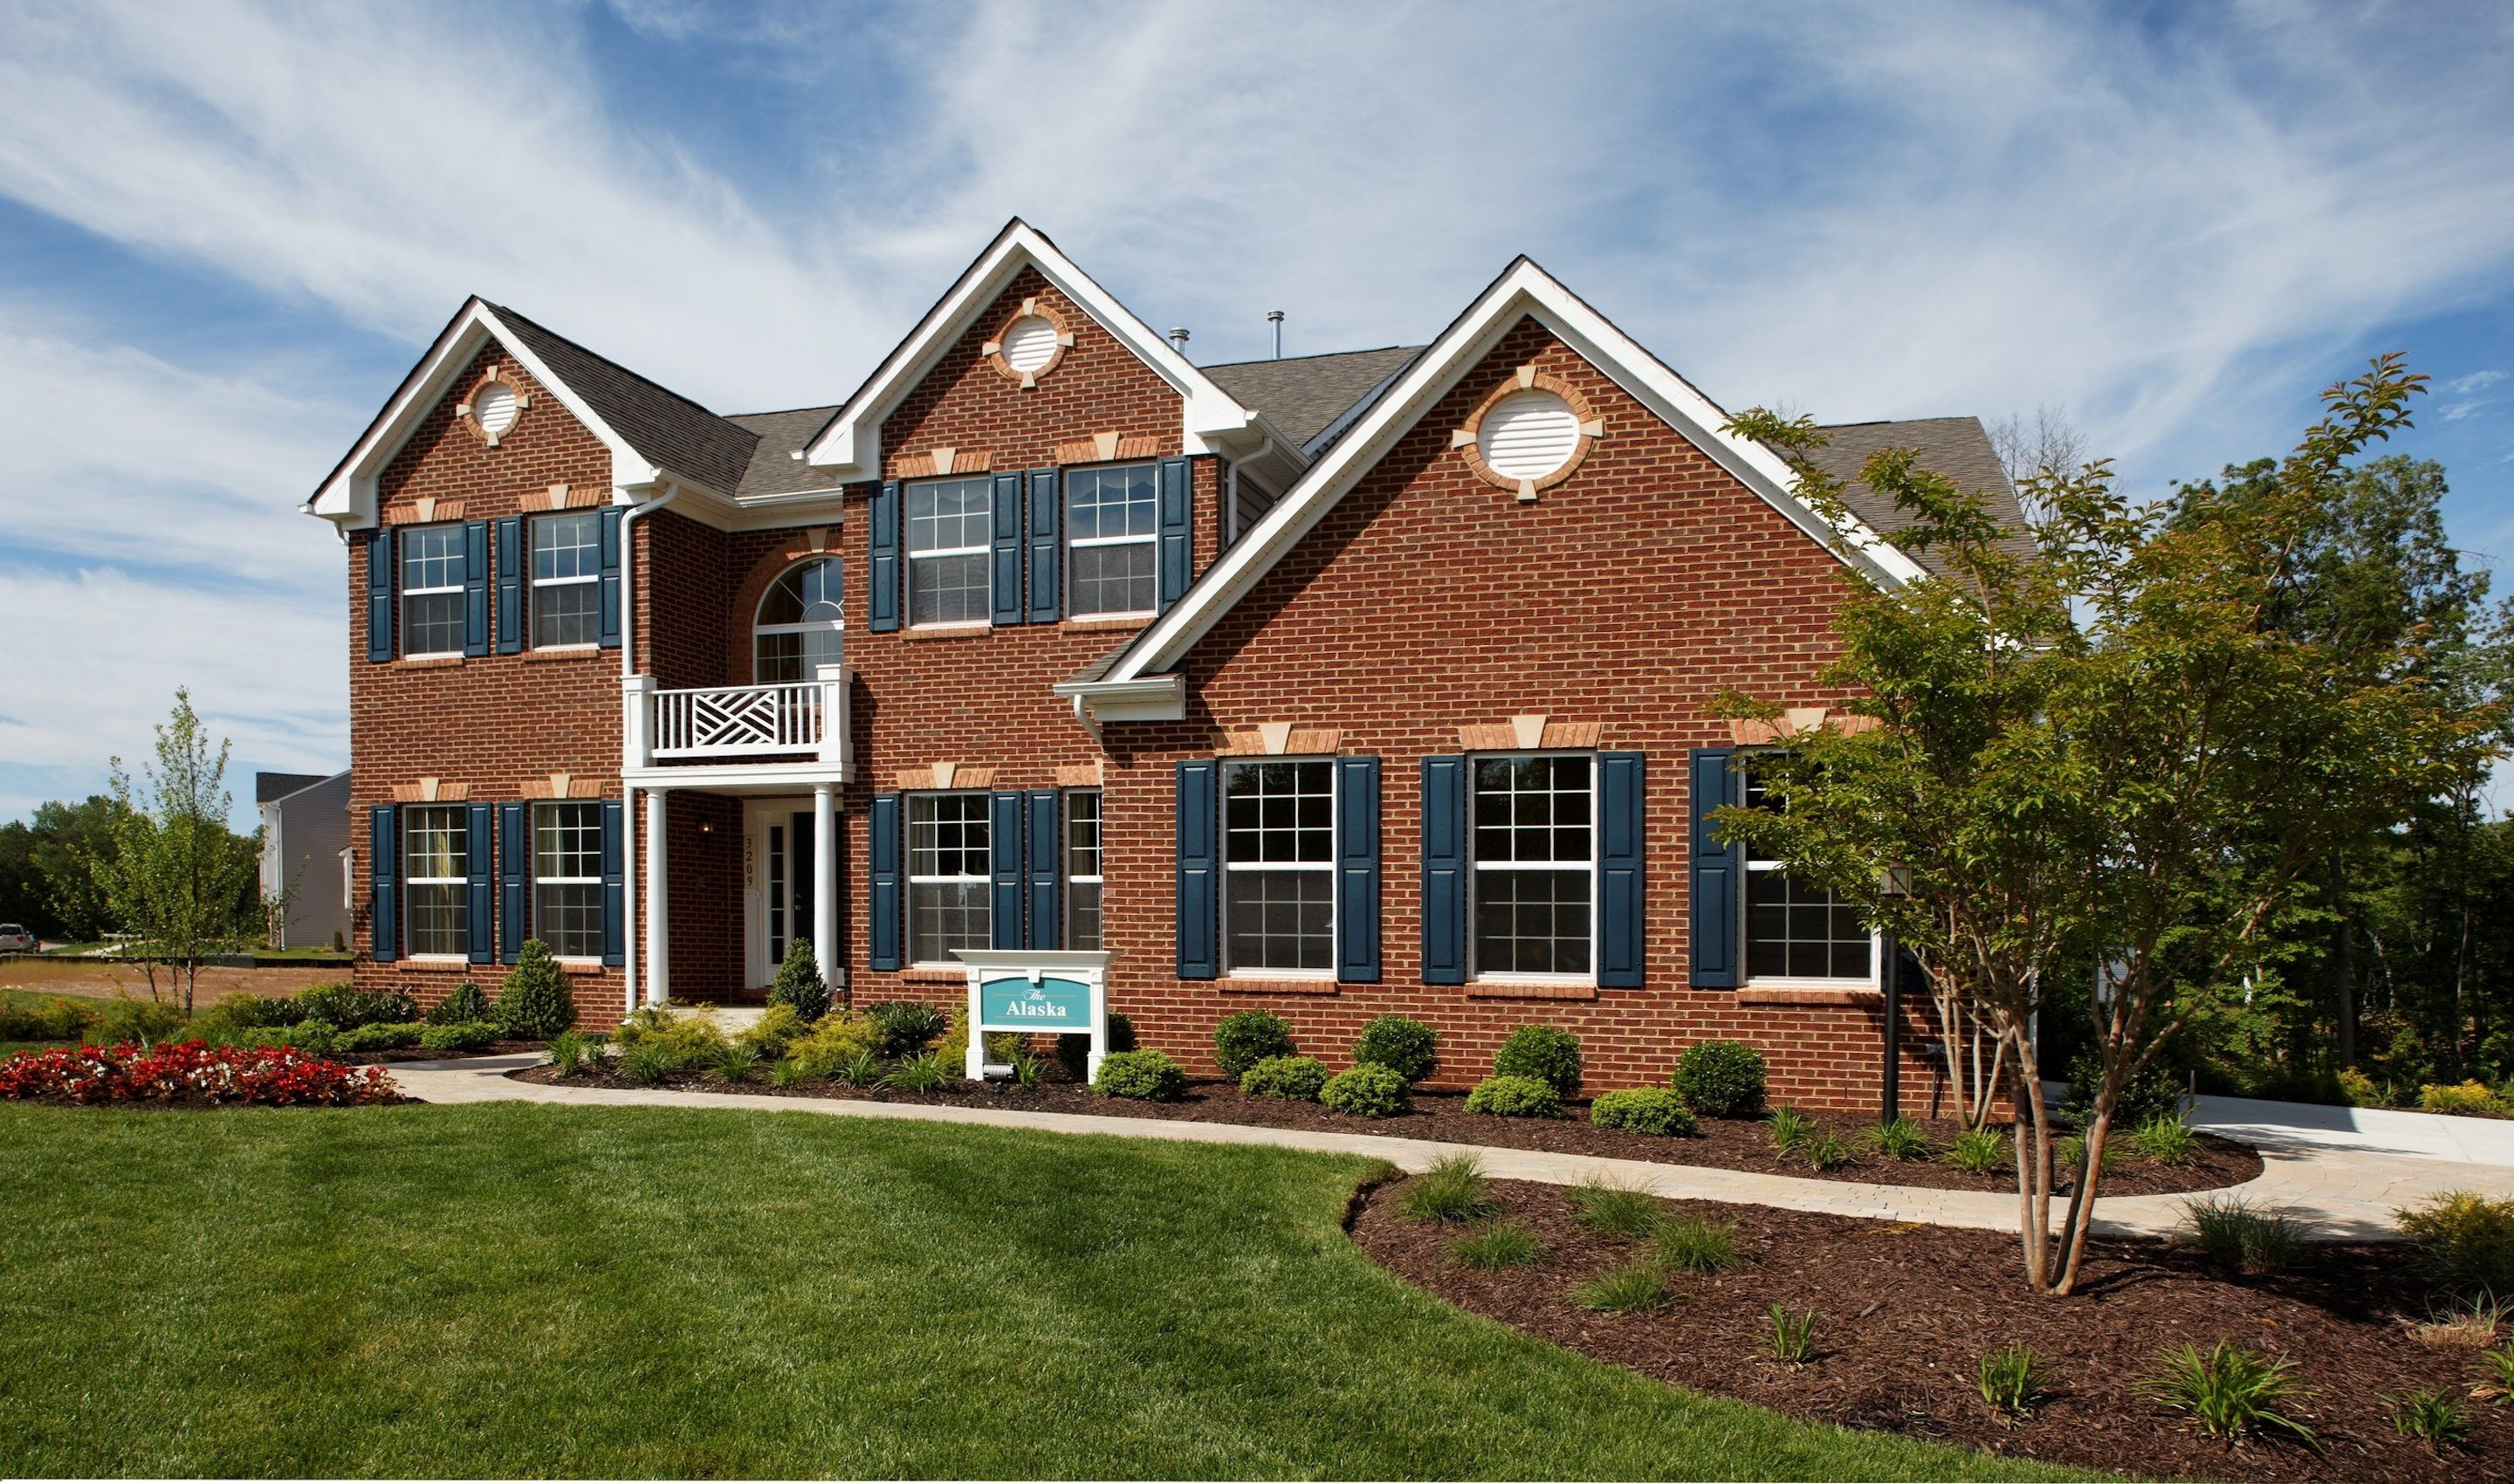 Single Family for Sale at Colorado 329 Price Drive, Homesite 57 Middletown, Delaware 19709 United States